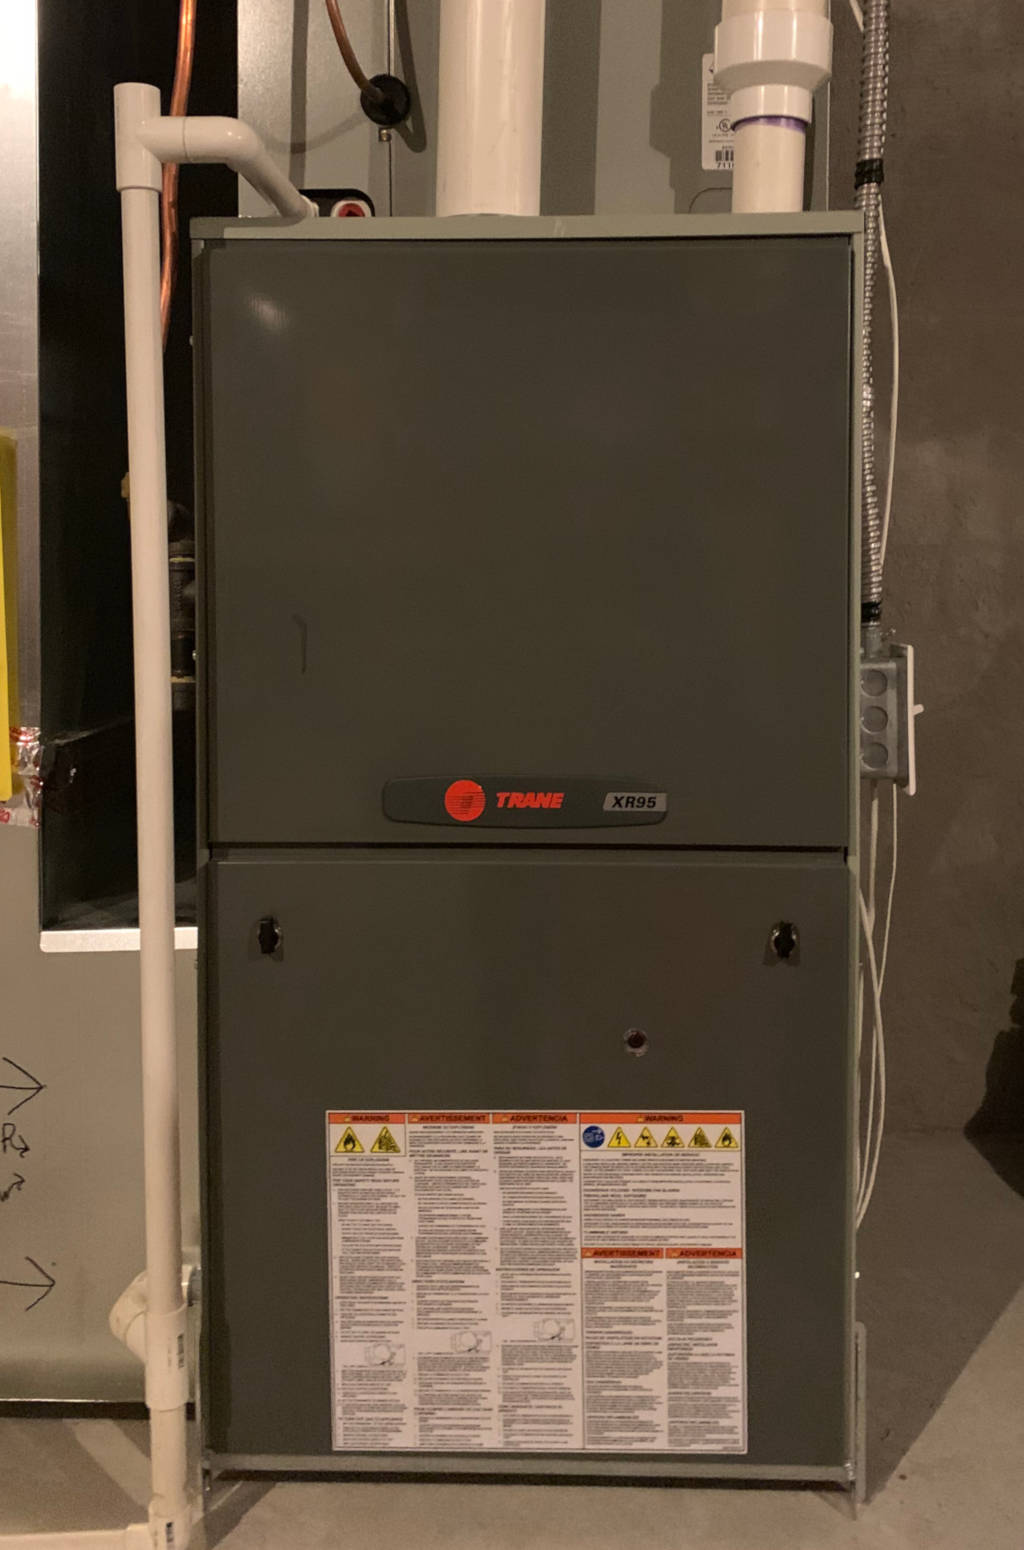 Furnace in a residential home